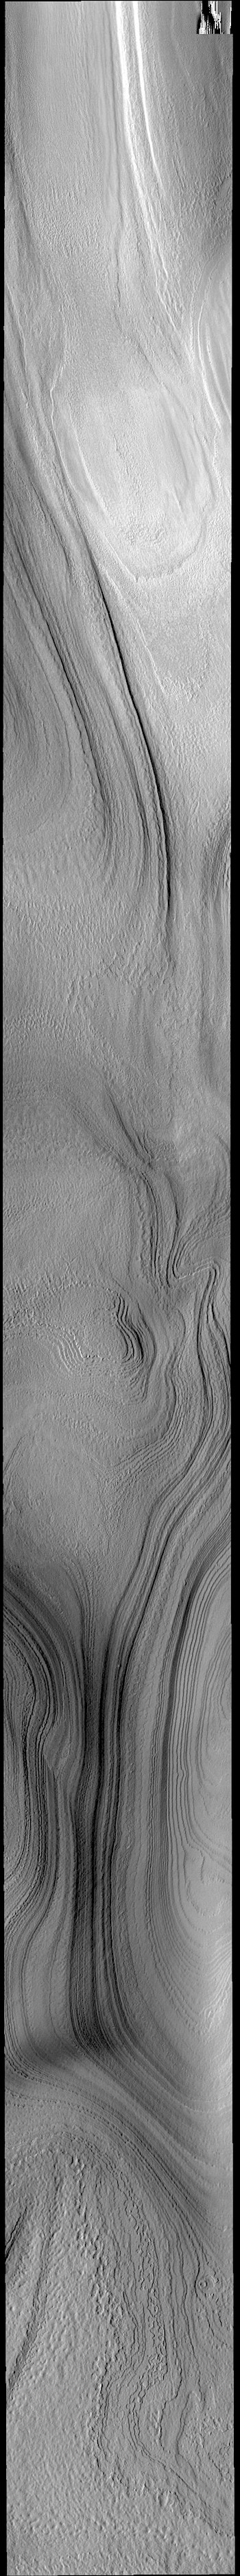 South polar layers swirl (THEMIS_IOTD_20190614)